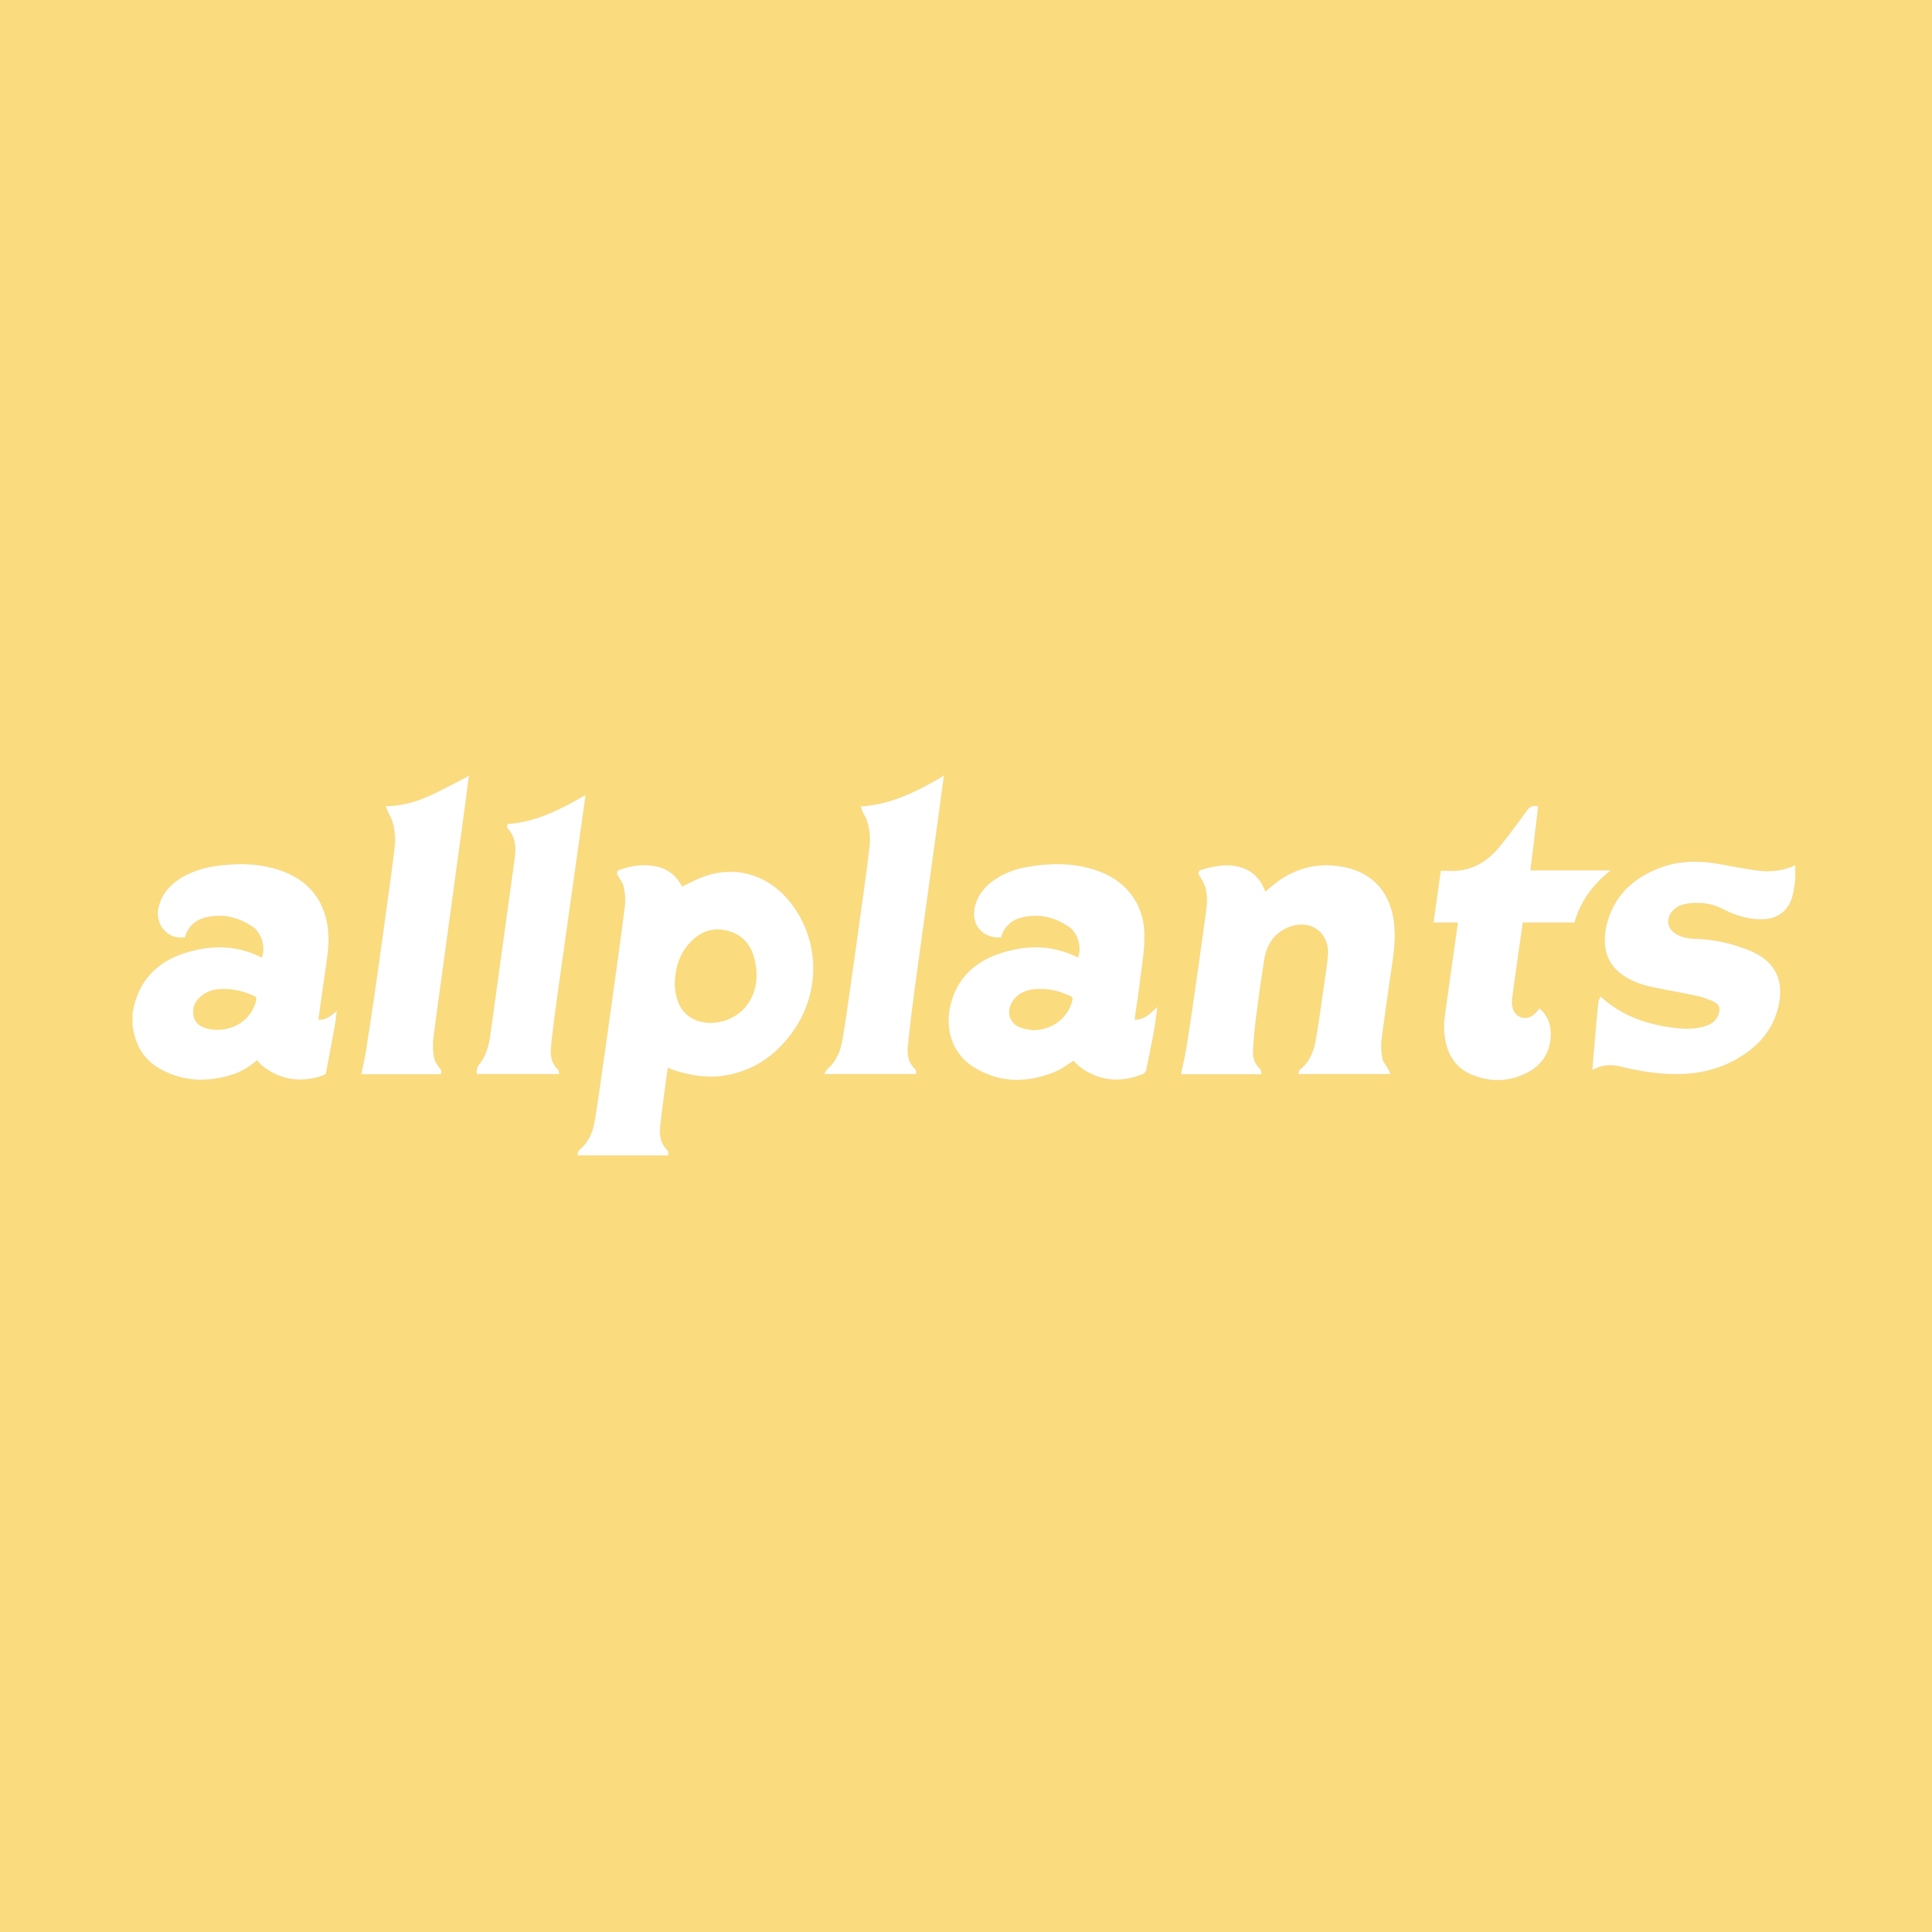 allplants Help Center home page